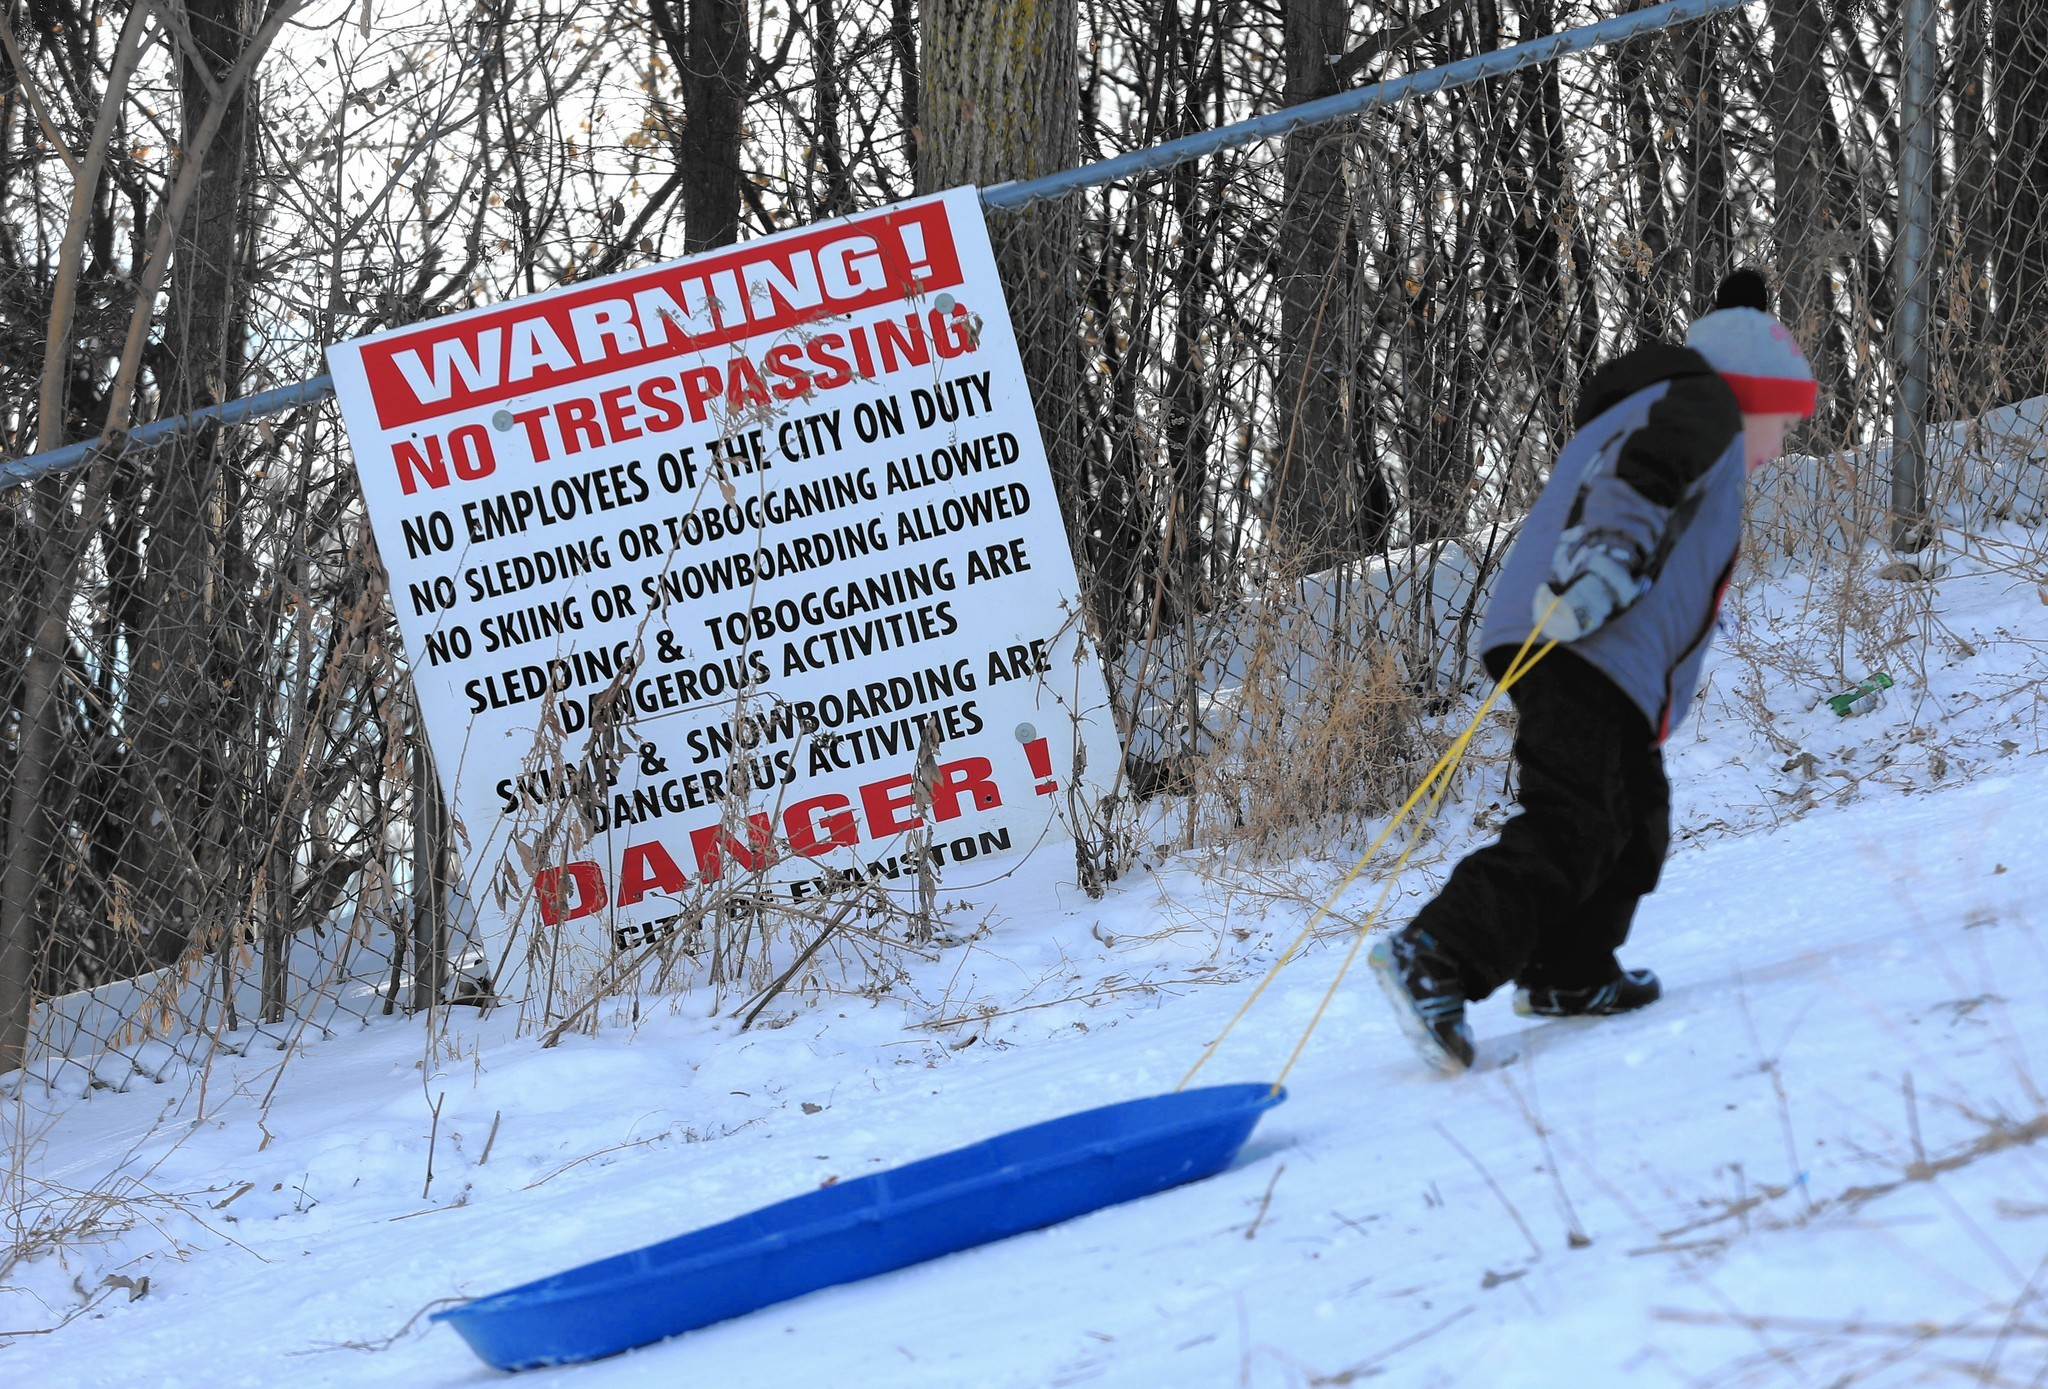 Chicago unlikely to follow trend to ban sledding